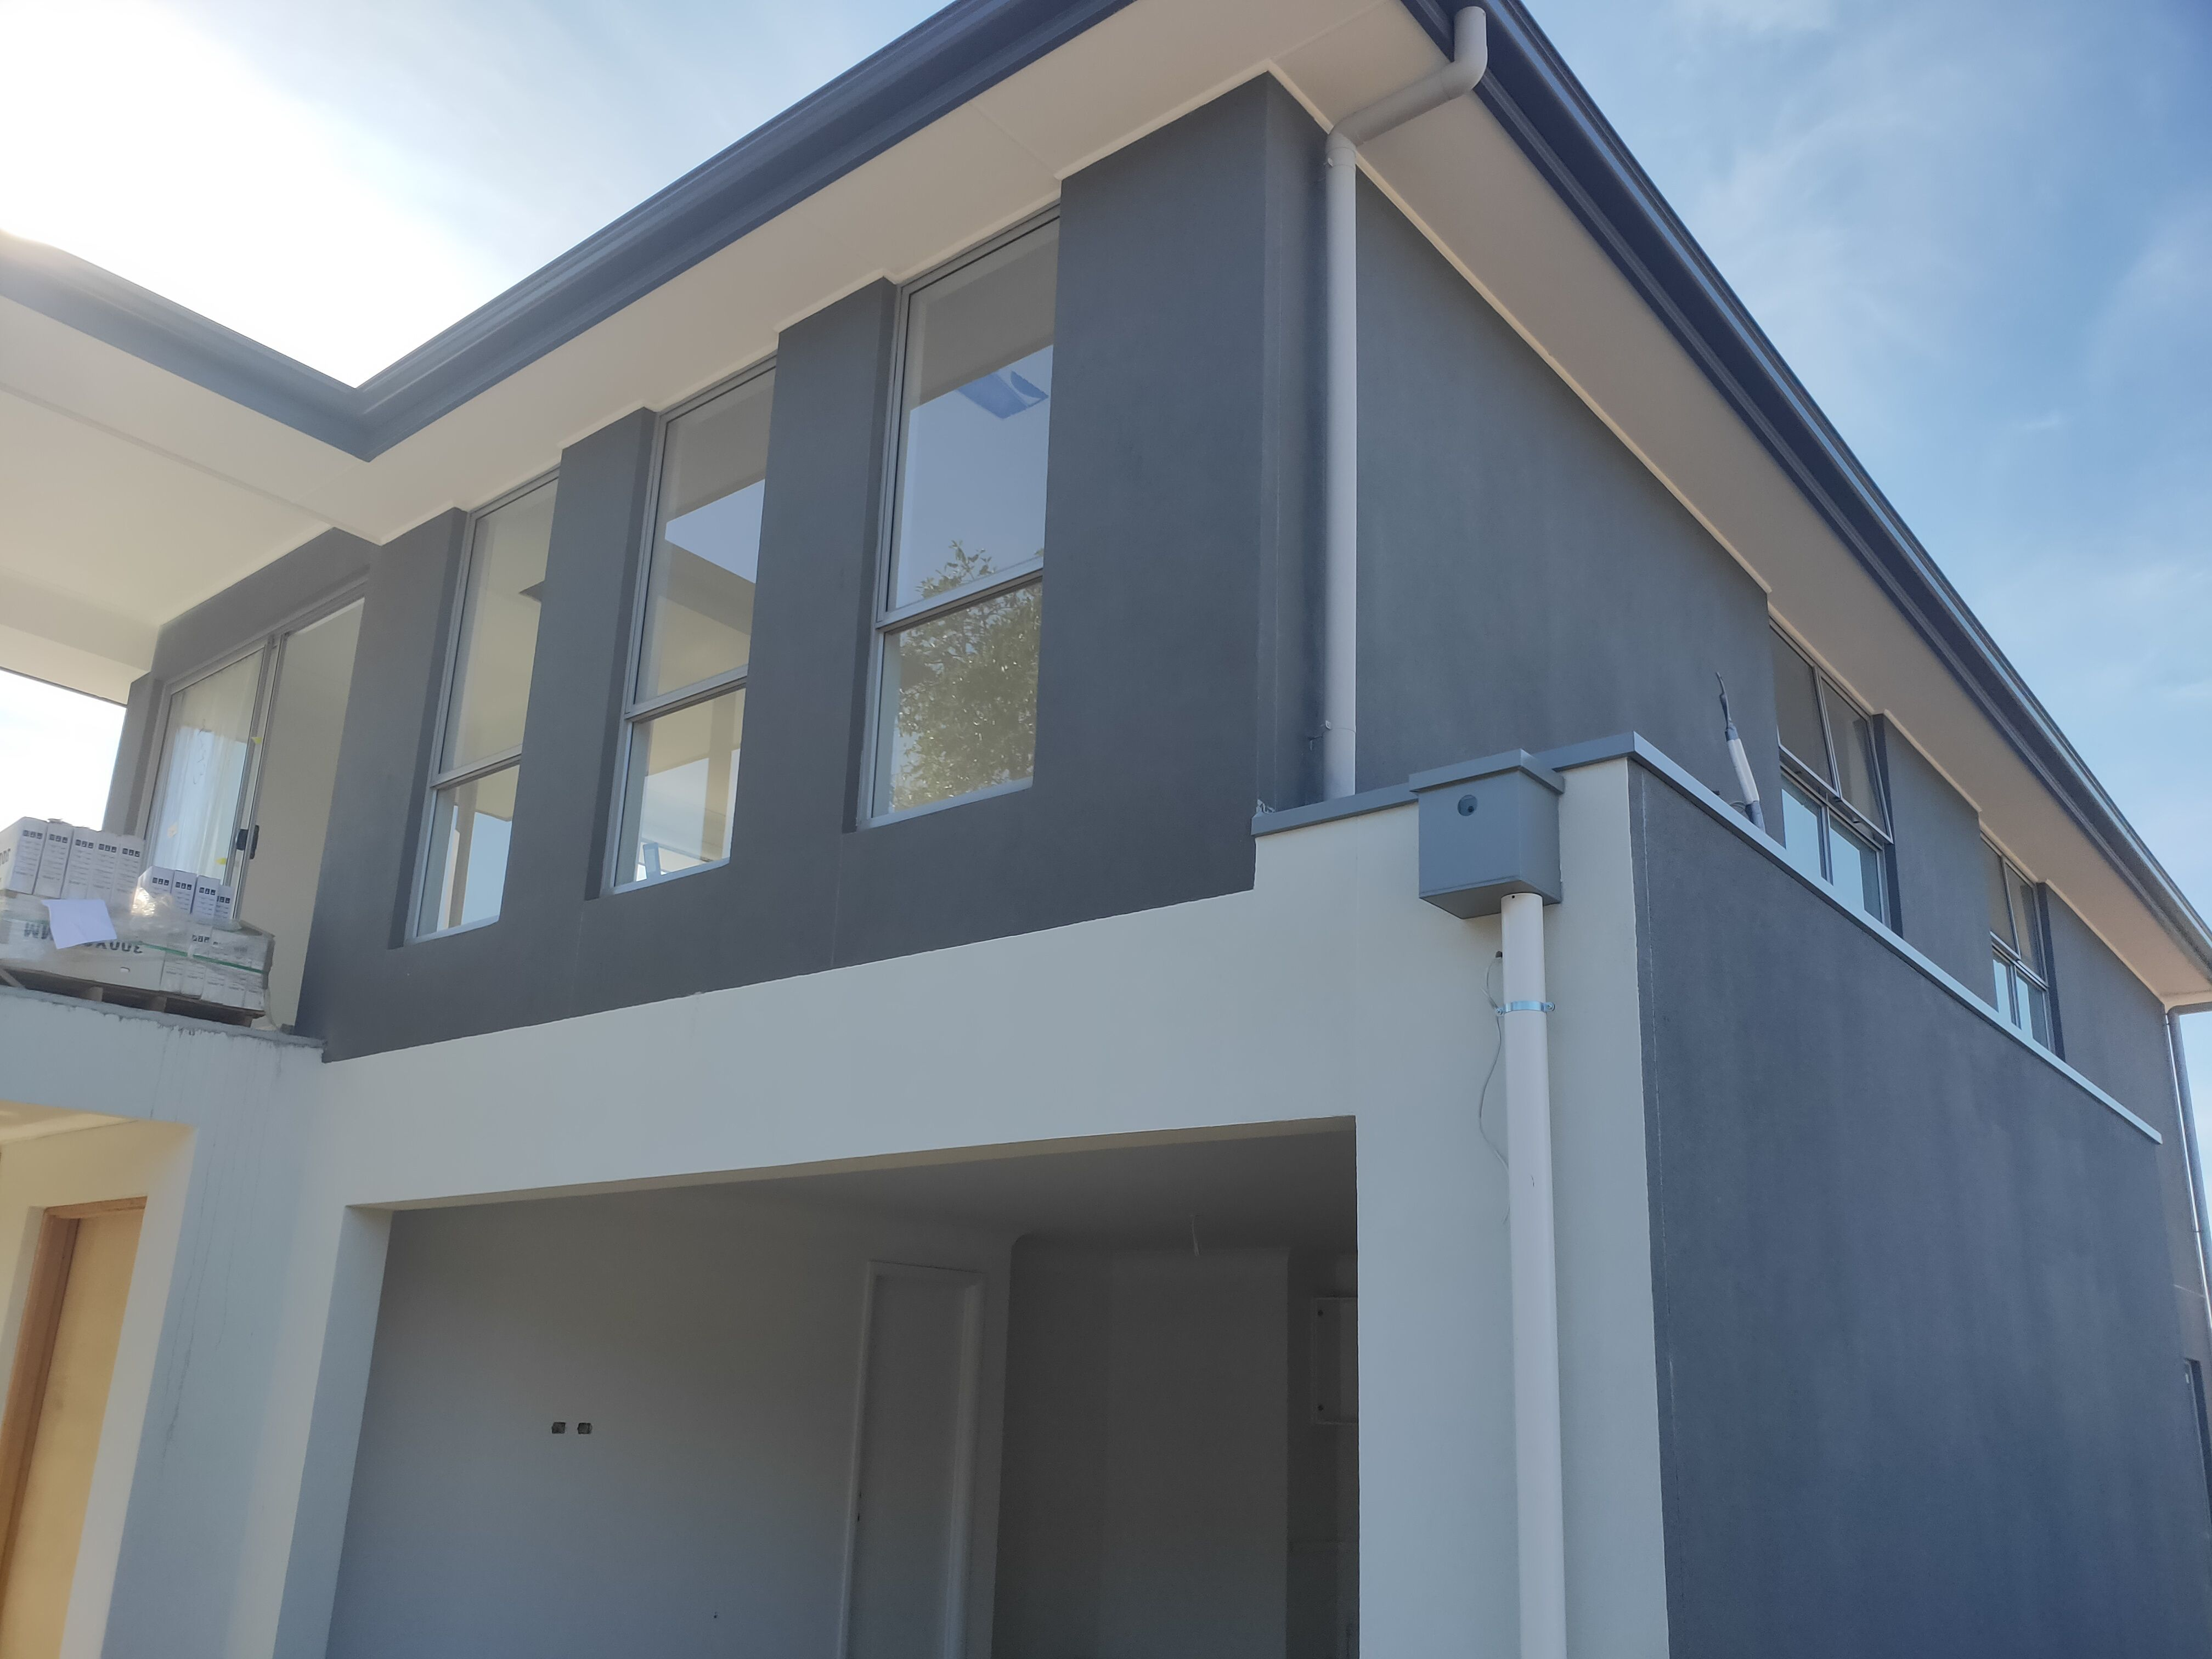 Another Quality Custom Built House Project Completed! Check out the project of our latest work in #Adelaide. Feel Free to Contact us 0450 480 849 / 0402 731 683 / 0469 797 549 Email: sales@technikhomes.com.au  #homeimprovement #renovations #newhomes #homestyling #dreamhome #house #luxuryhomes #sabuilder #adelaidebuilders #qualityconstruction #customhomes #construction #bestbuilders #interiordecorating